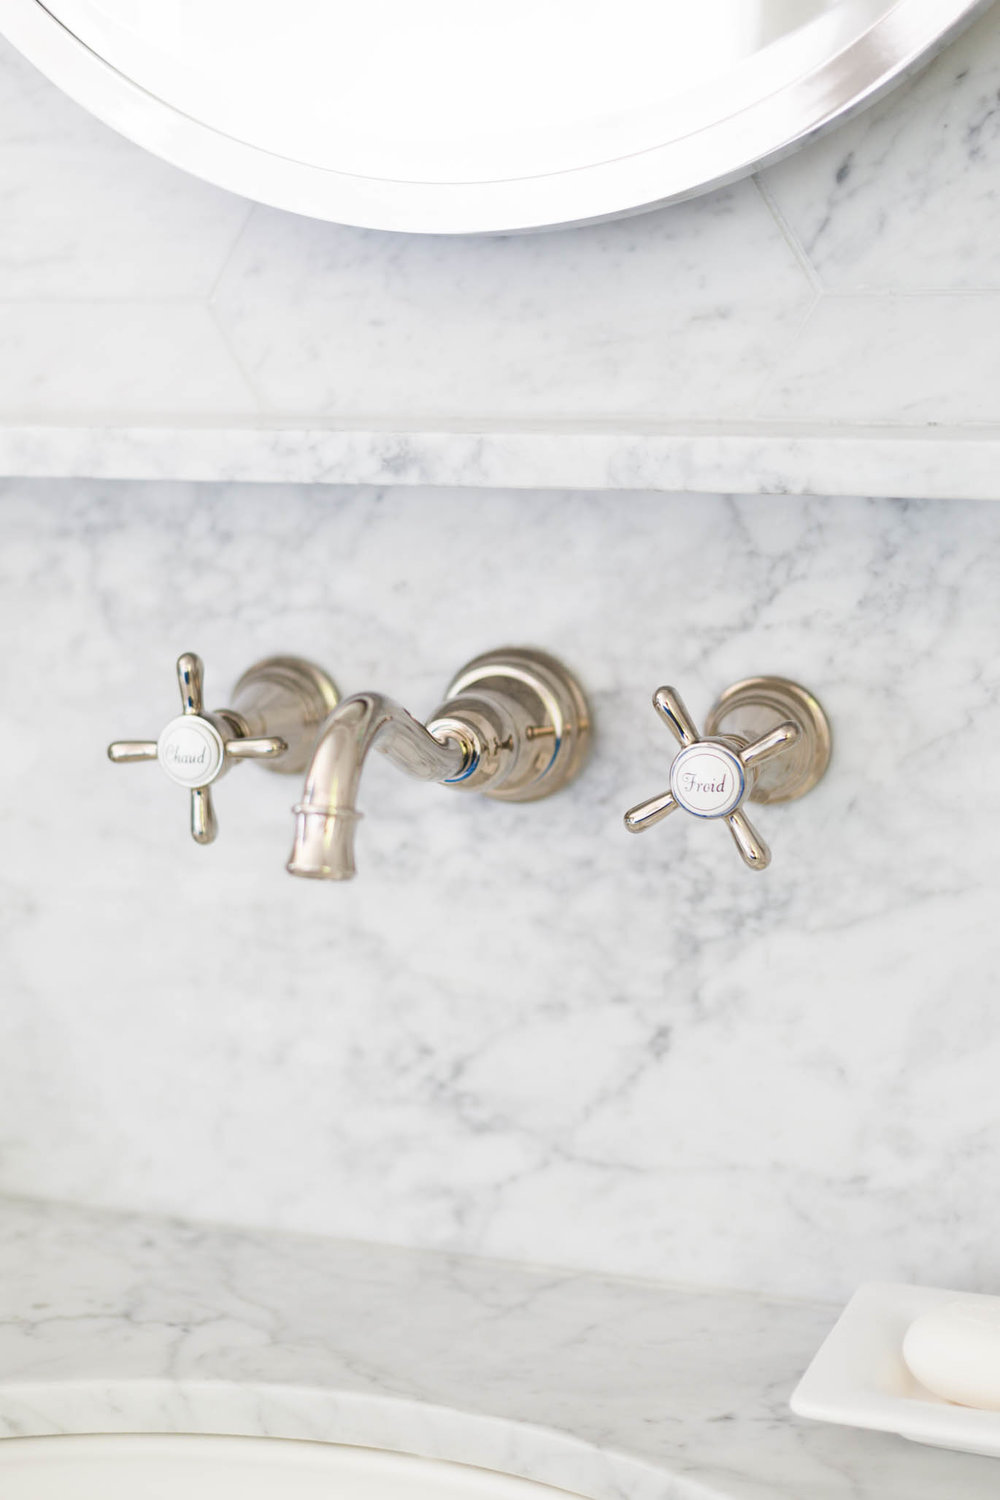 Wall mount faucet on white marble backsplash with ledge at bathroom sink | Carla Aston, Designer | Tori Aston, Photographer